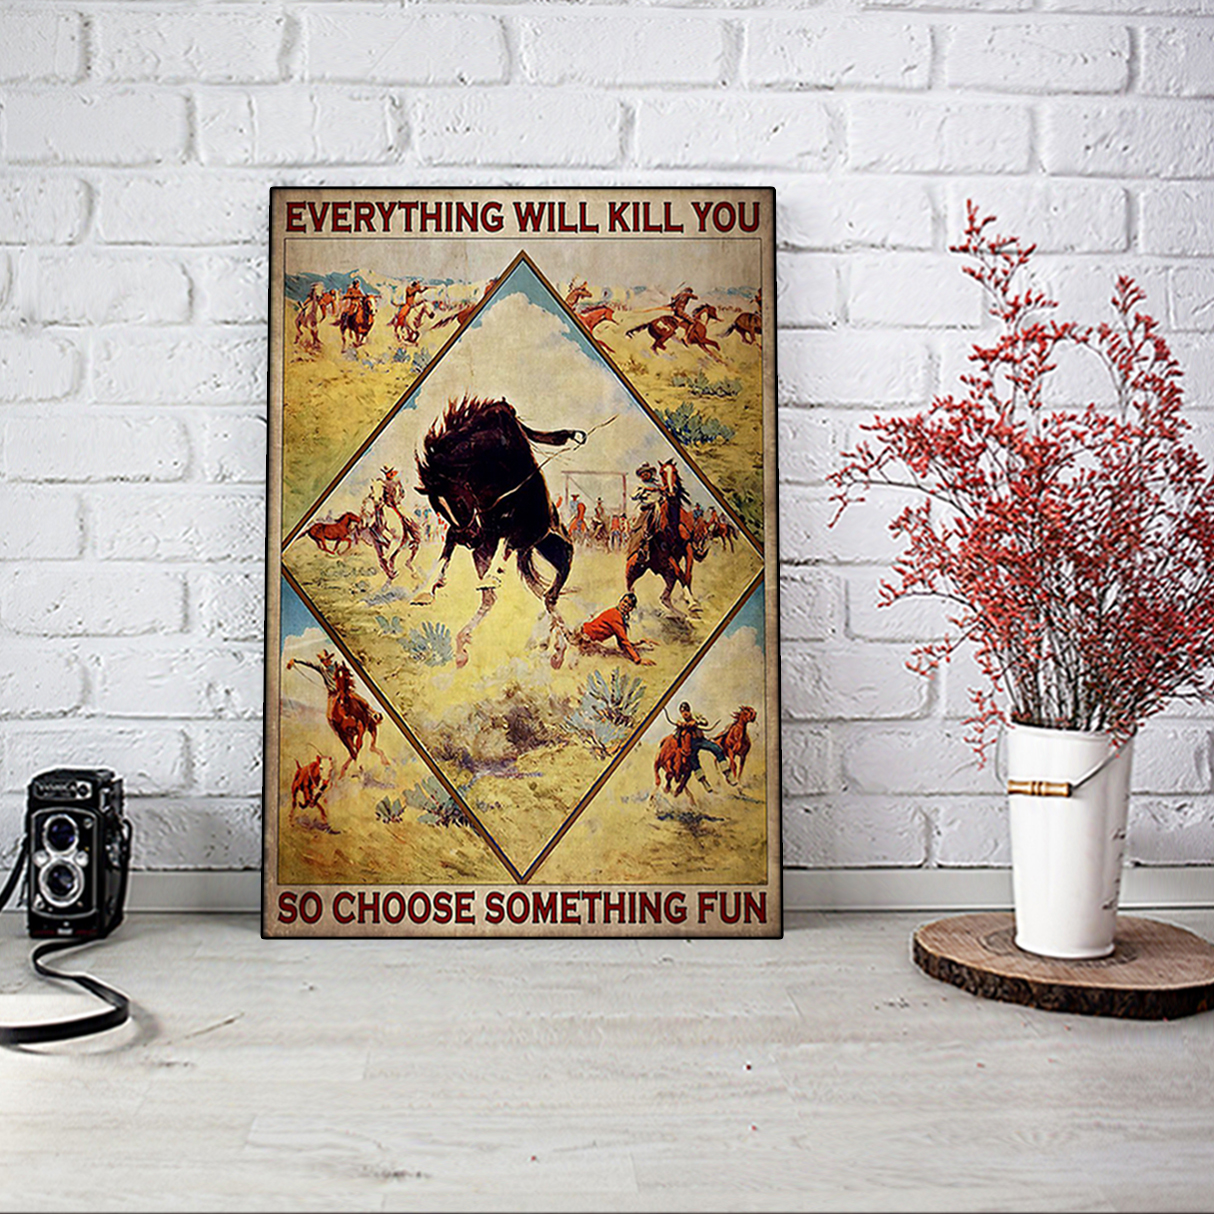 Cowboy rodeo everything will kill you so choose something fun poster A2